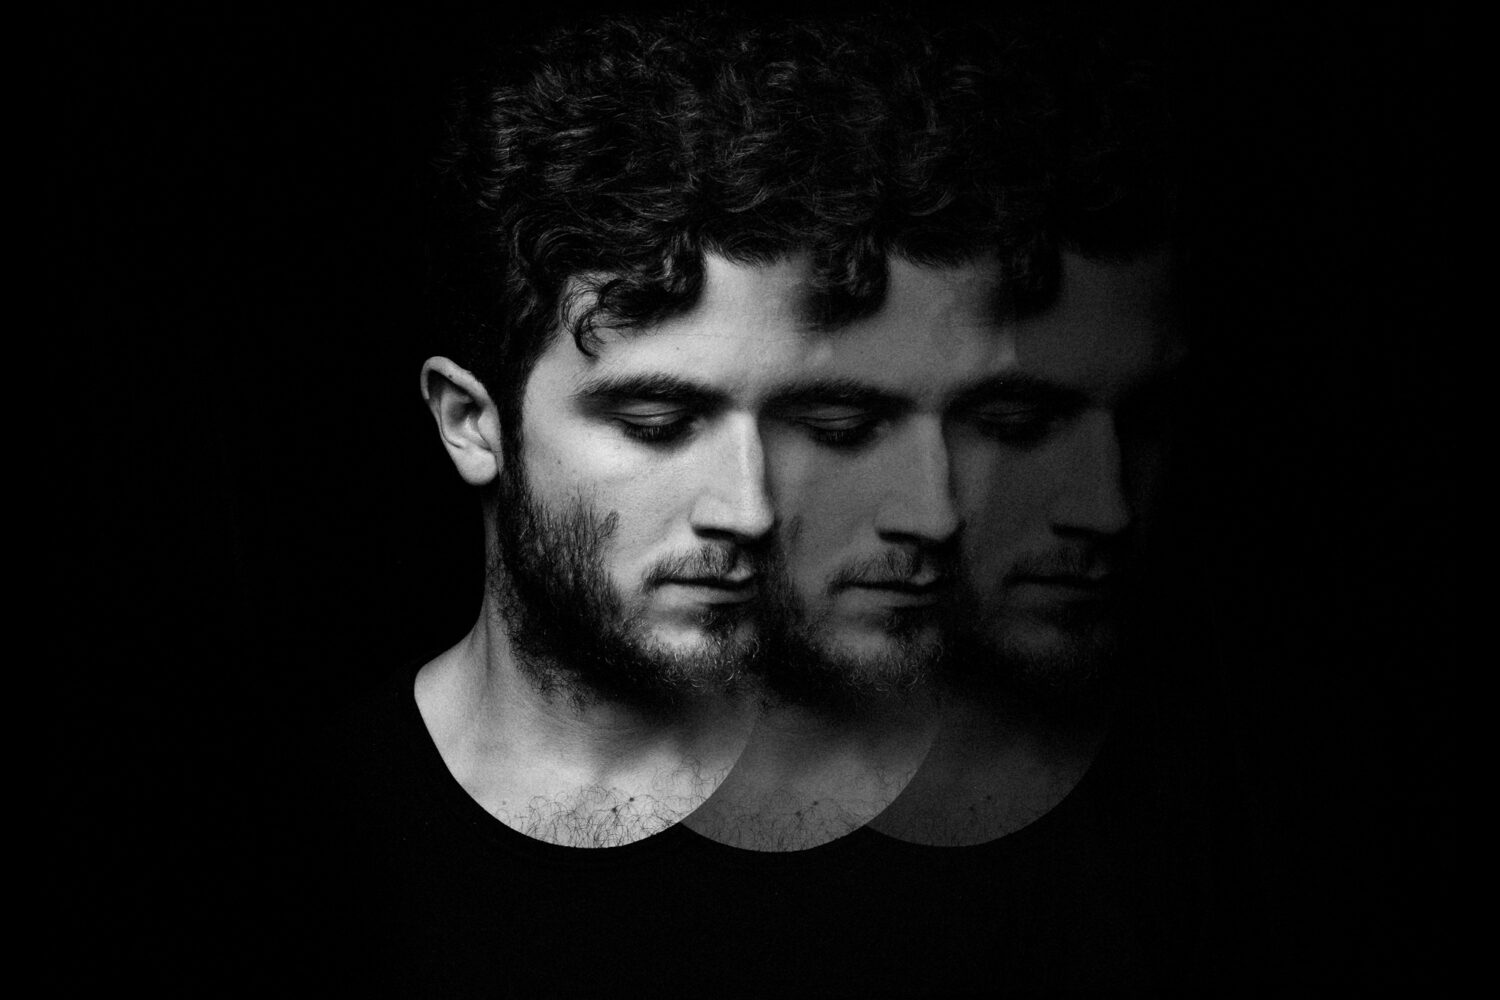 Nicolas Jaar has shared an expanded 'Network Version' of 'Sirens'